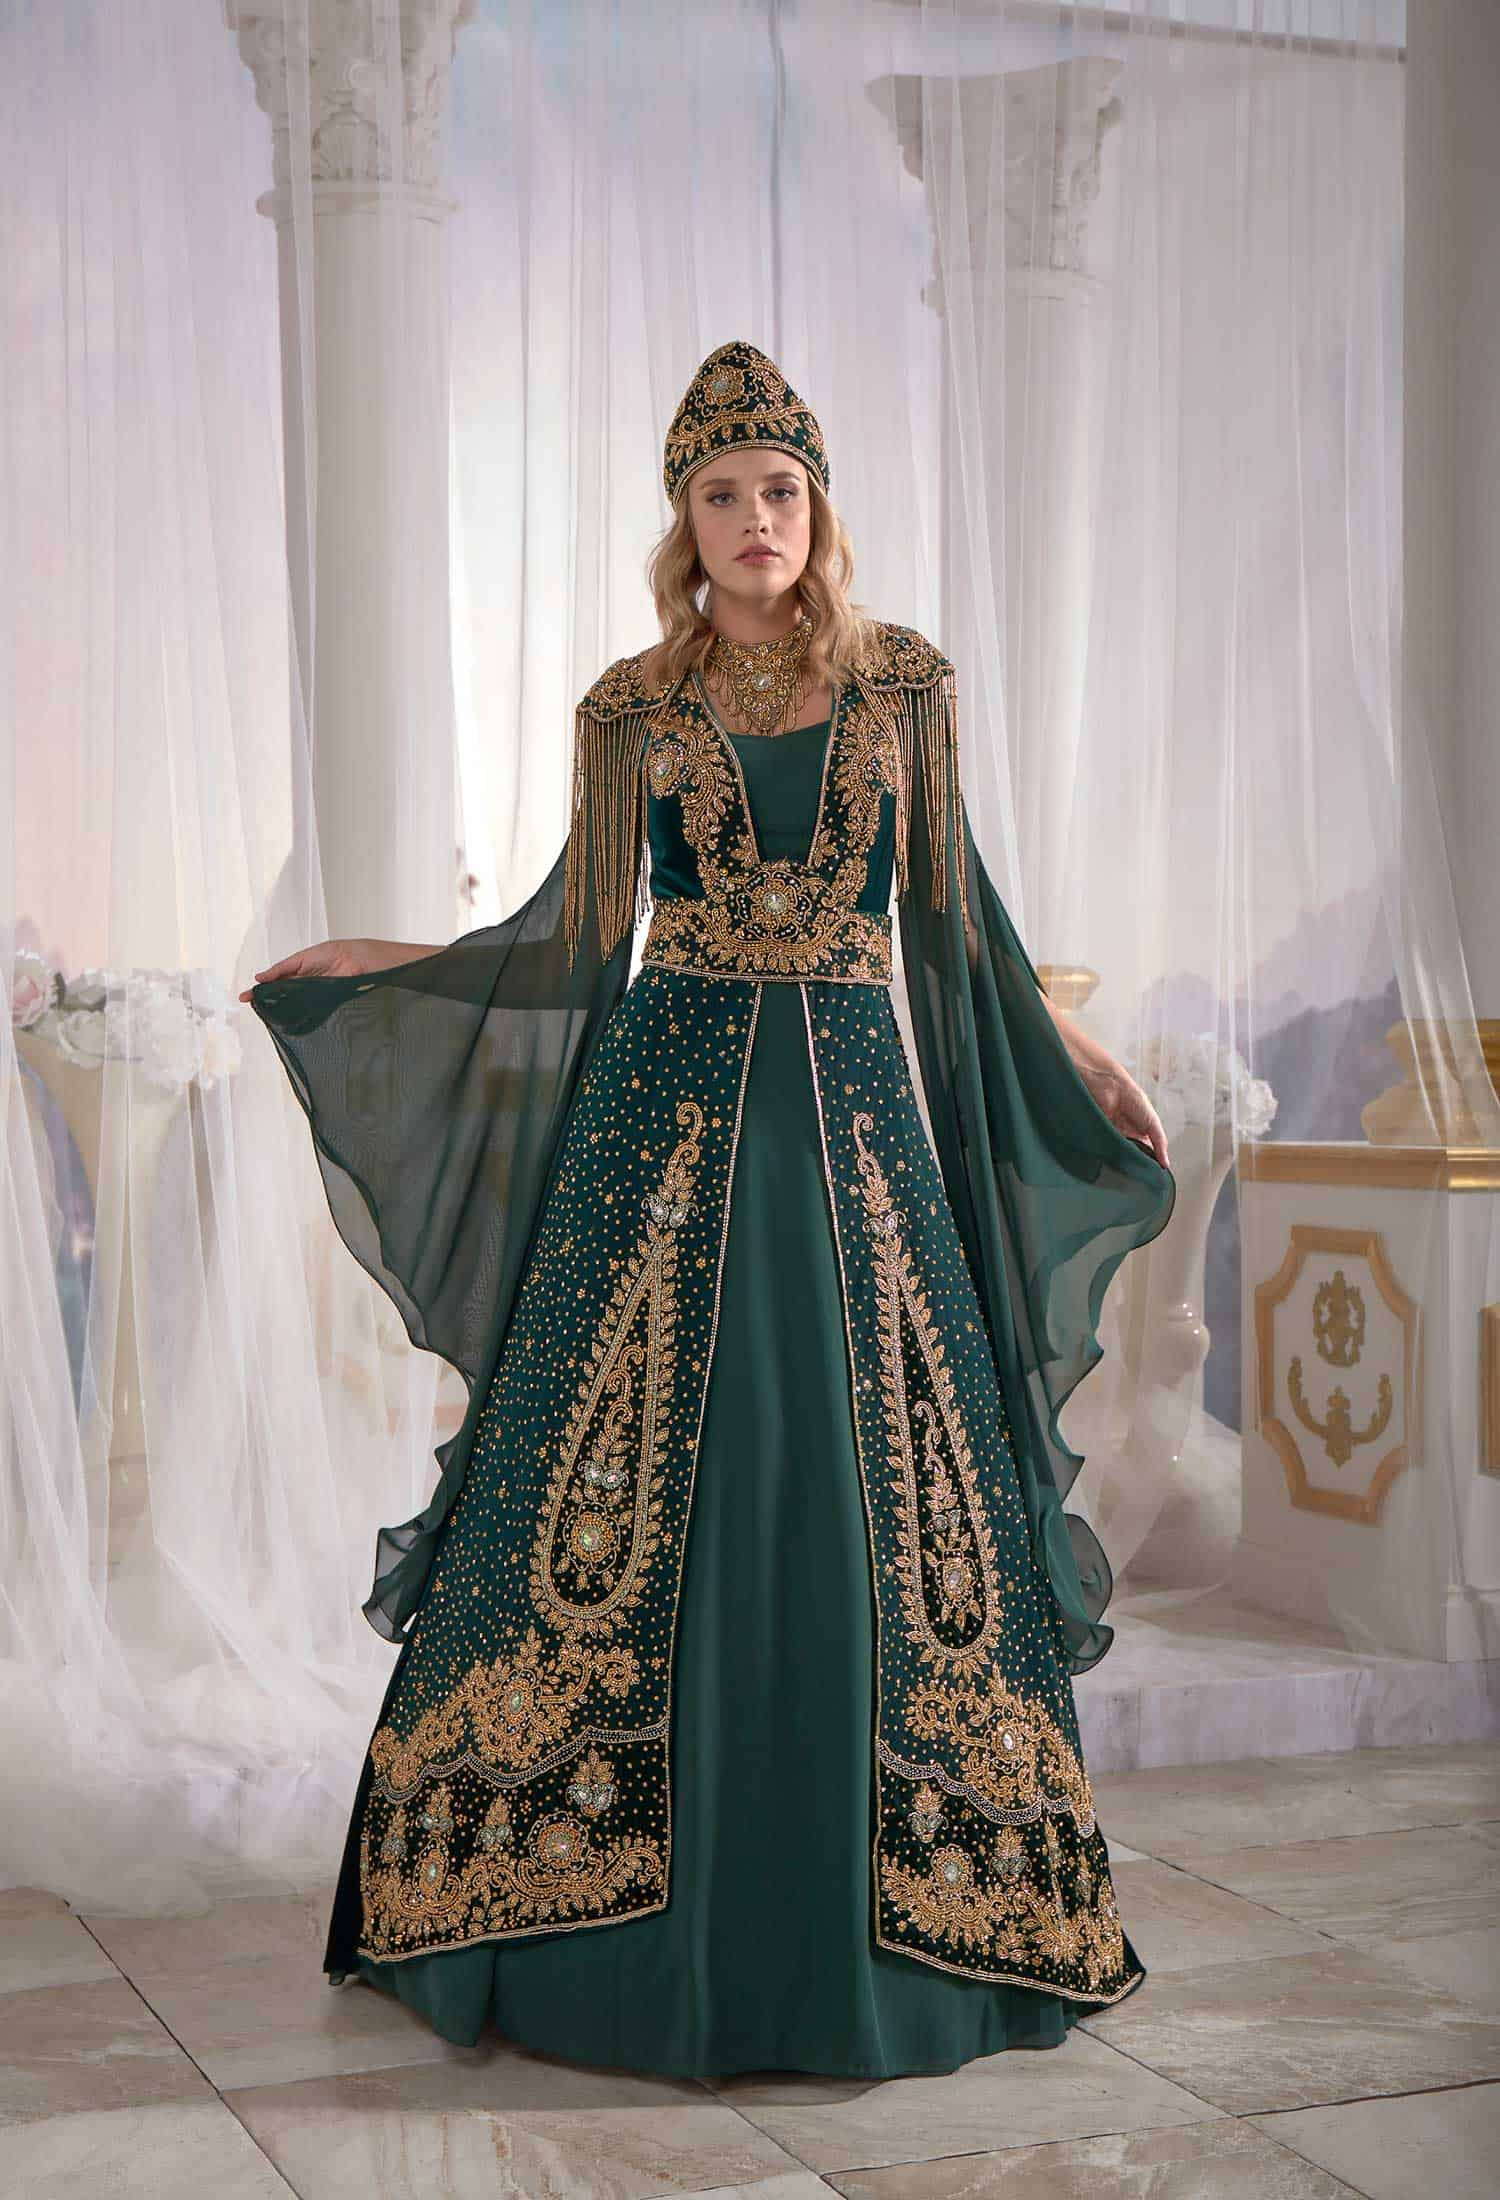 46048df852 Navy Blue Ethnic Embellished Top Detail Tulle Sleeve Ottoman Caftan ...